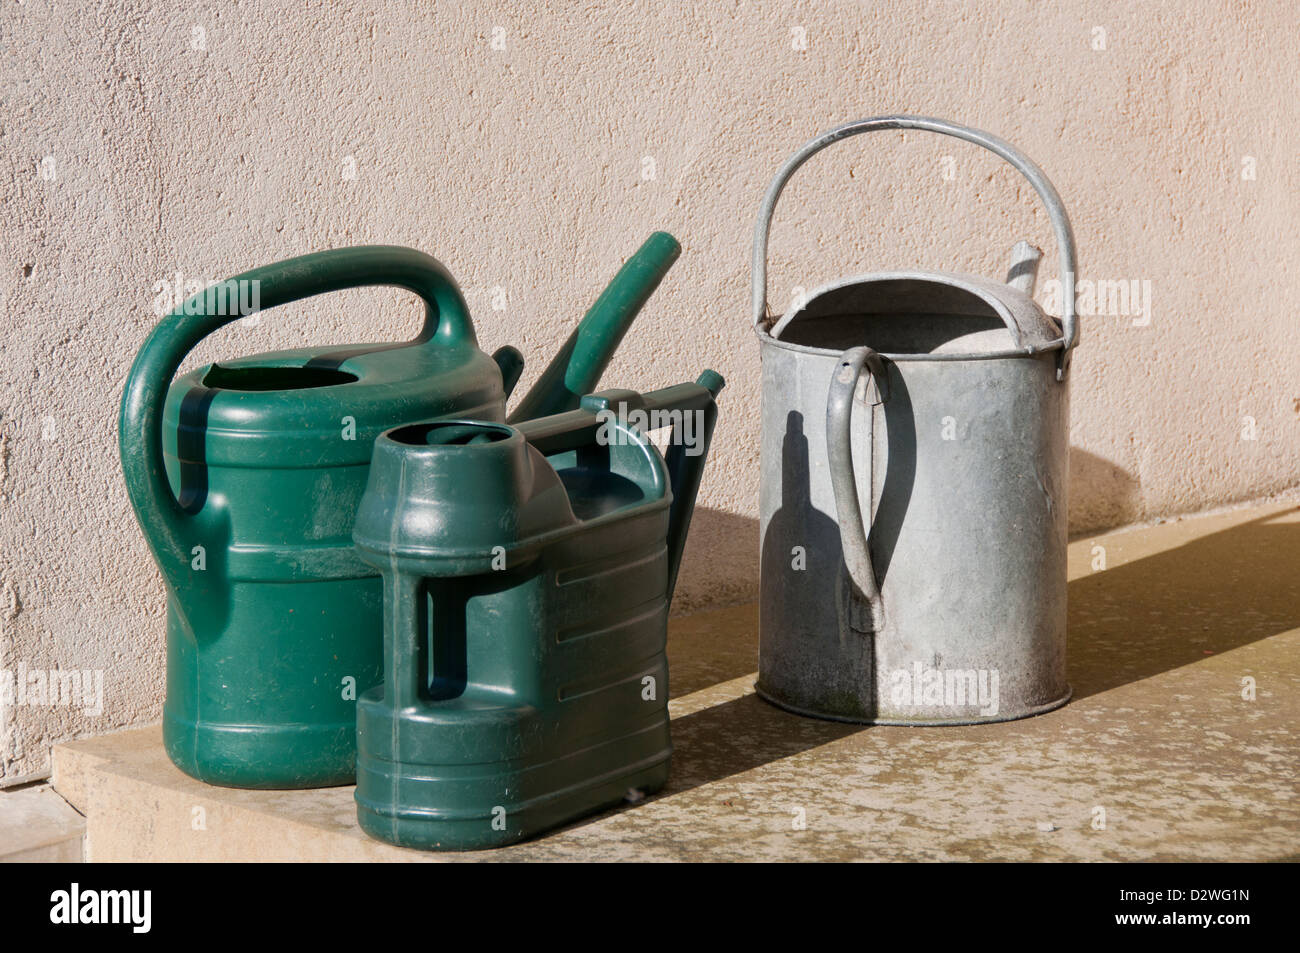 two plastic and one galvanized steel watering can - Stock Image